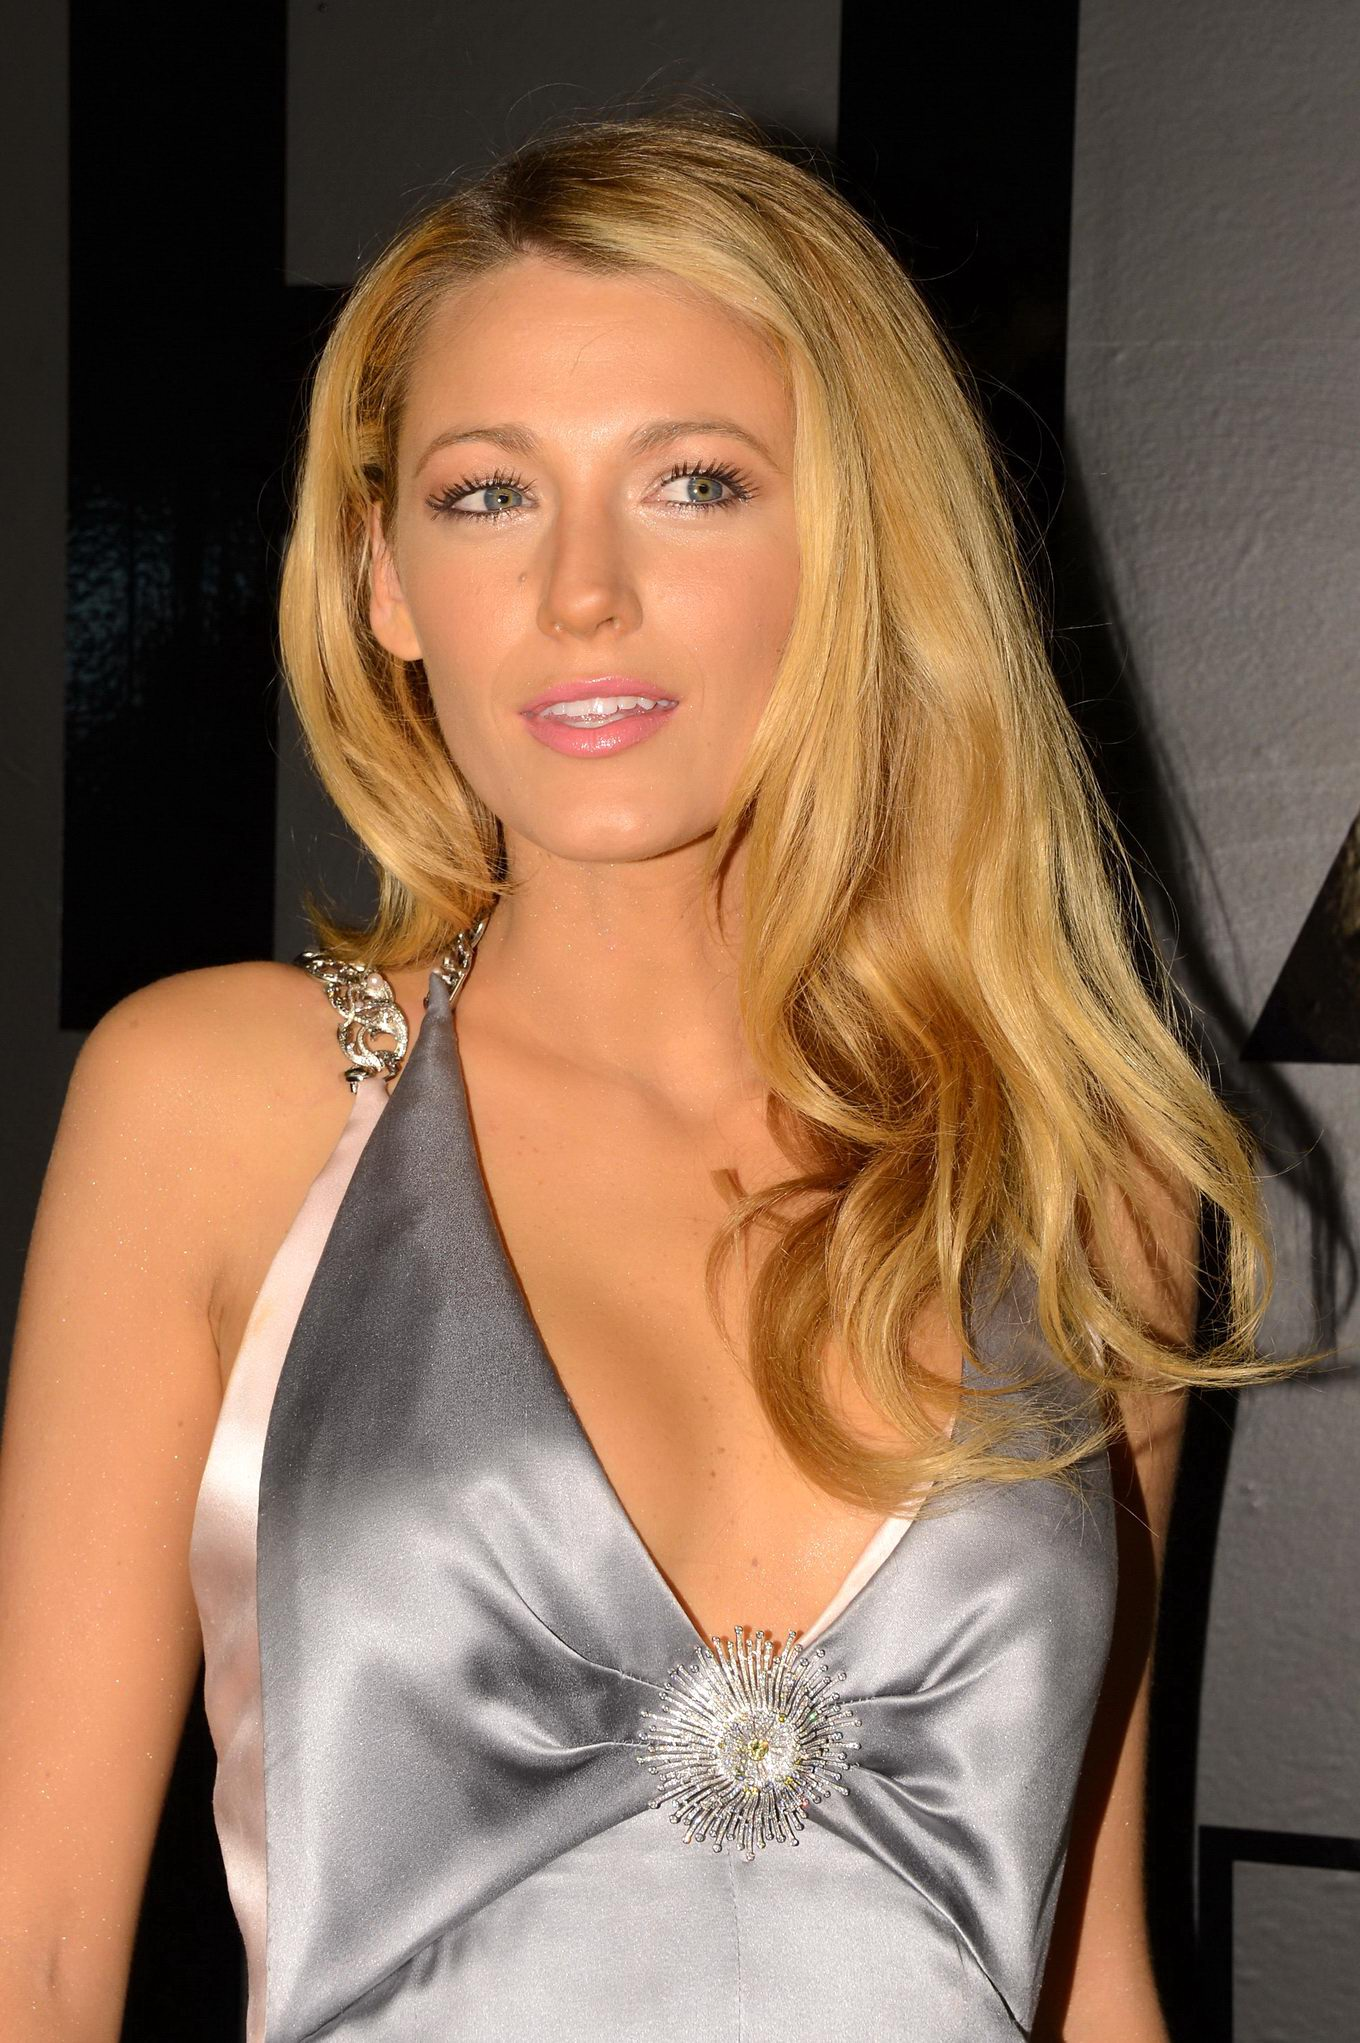 blake lively showing huge cleavage at chanel bijoux de